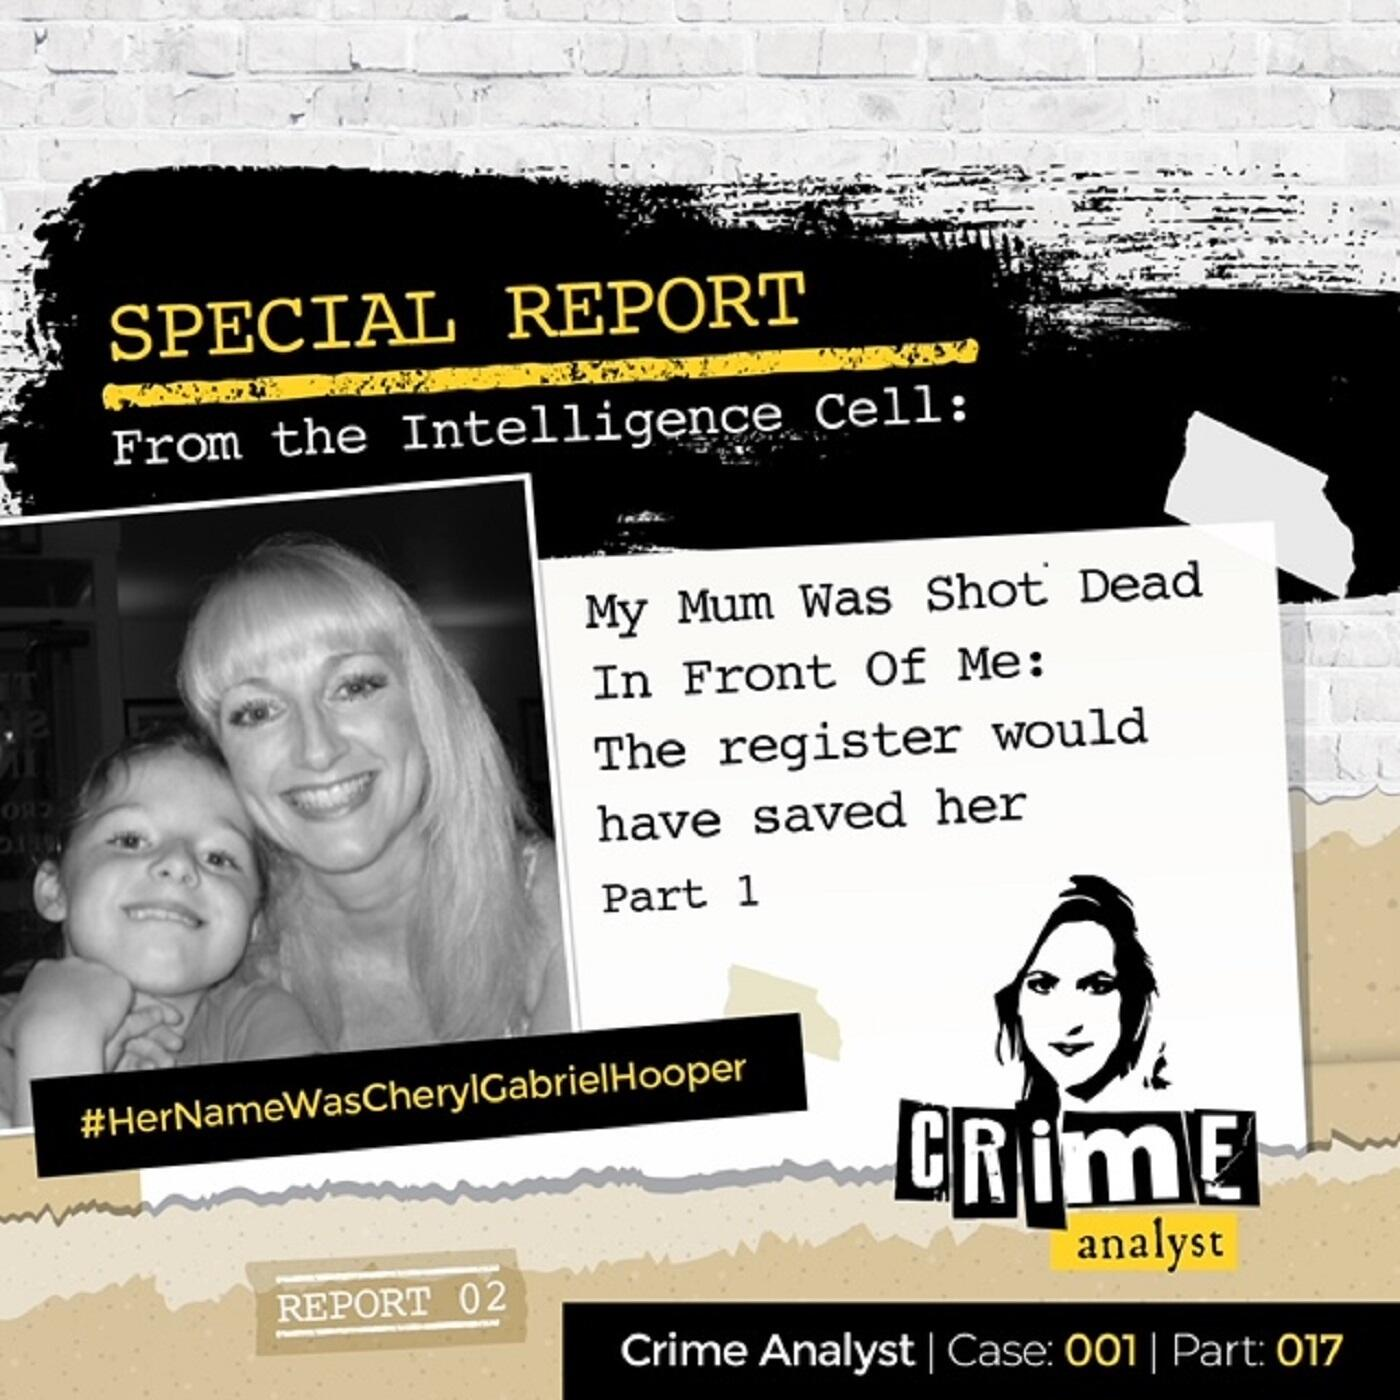 17: Special Report from the Intelligence Cell | My Mum Was Shot Dead in Front Of Me: The Register Would Have Saved Her | Part 1